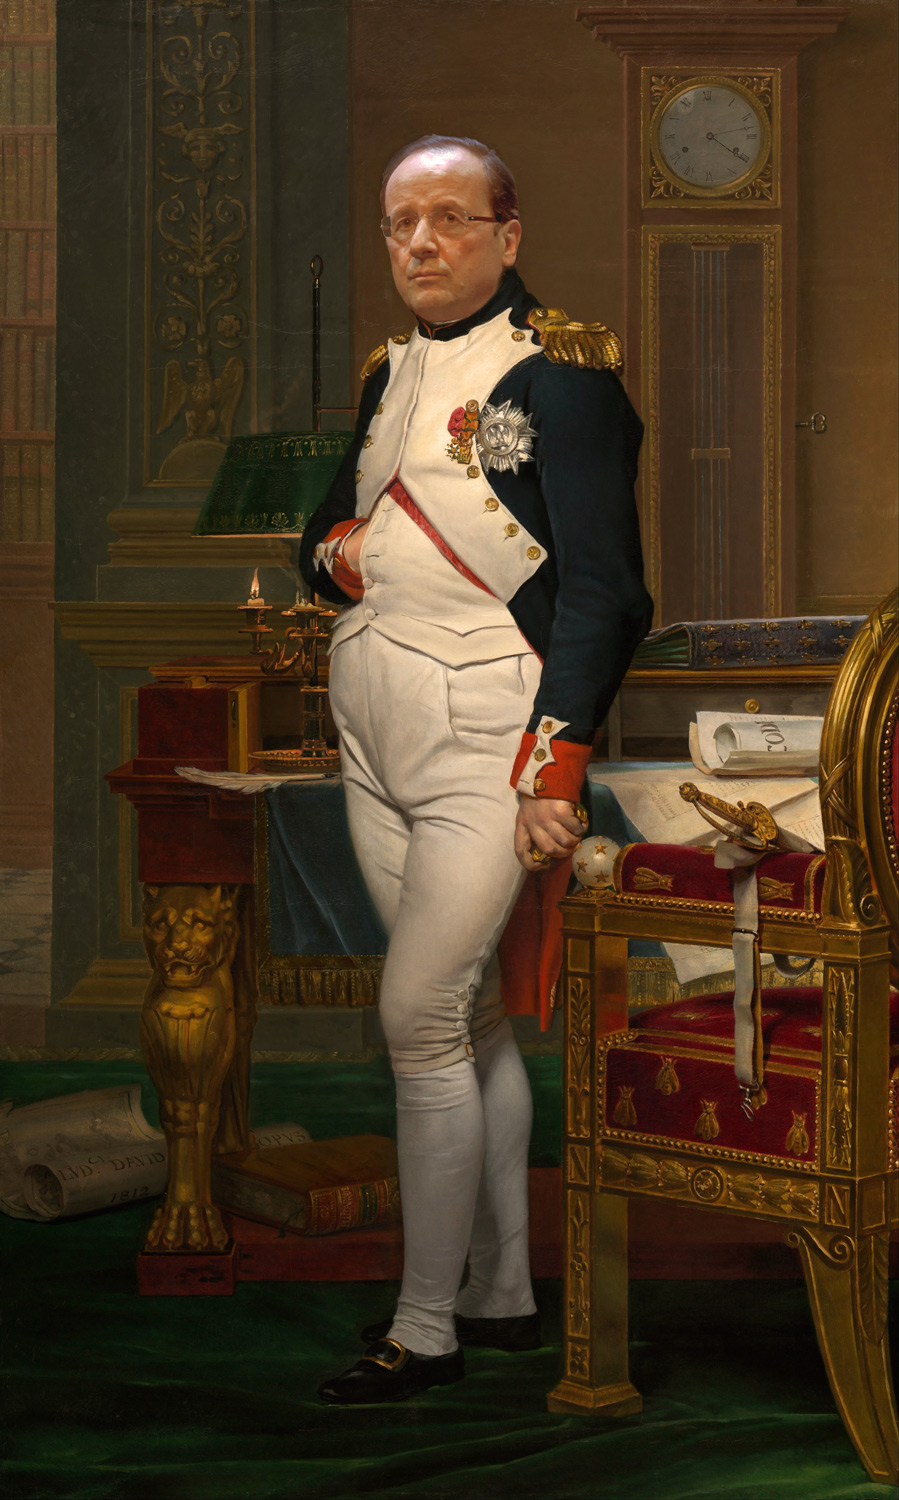 Francois Hollande as The Emperor Napoleon in His Study at the Tuileries